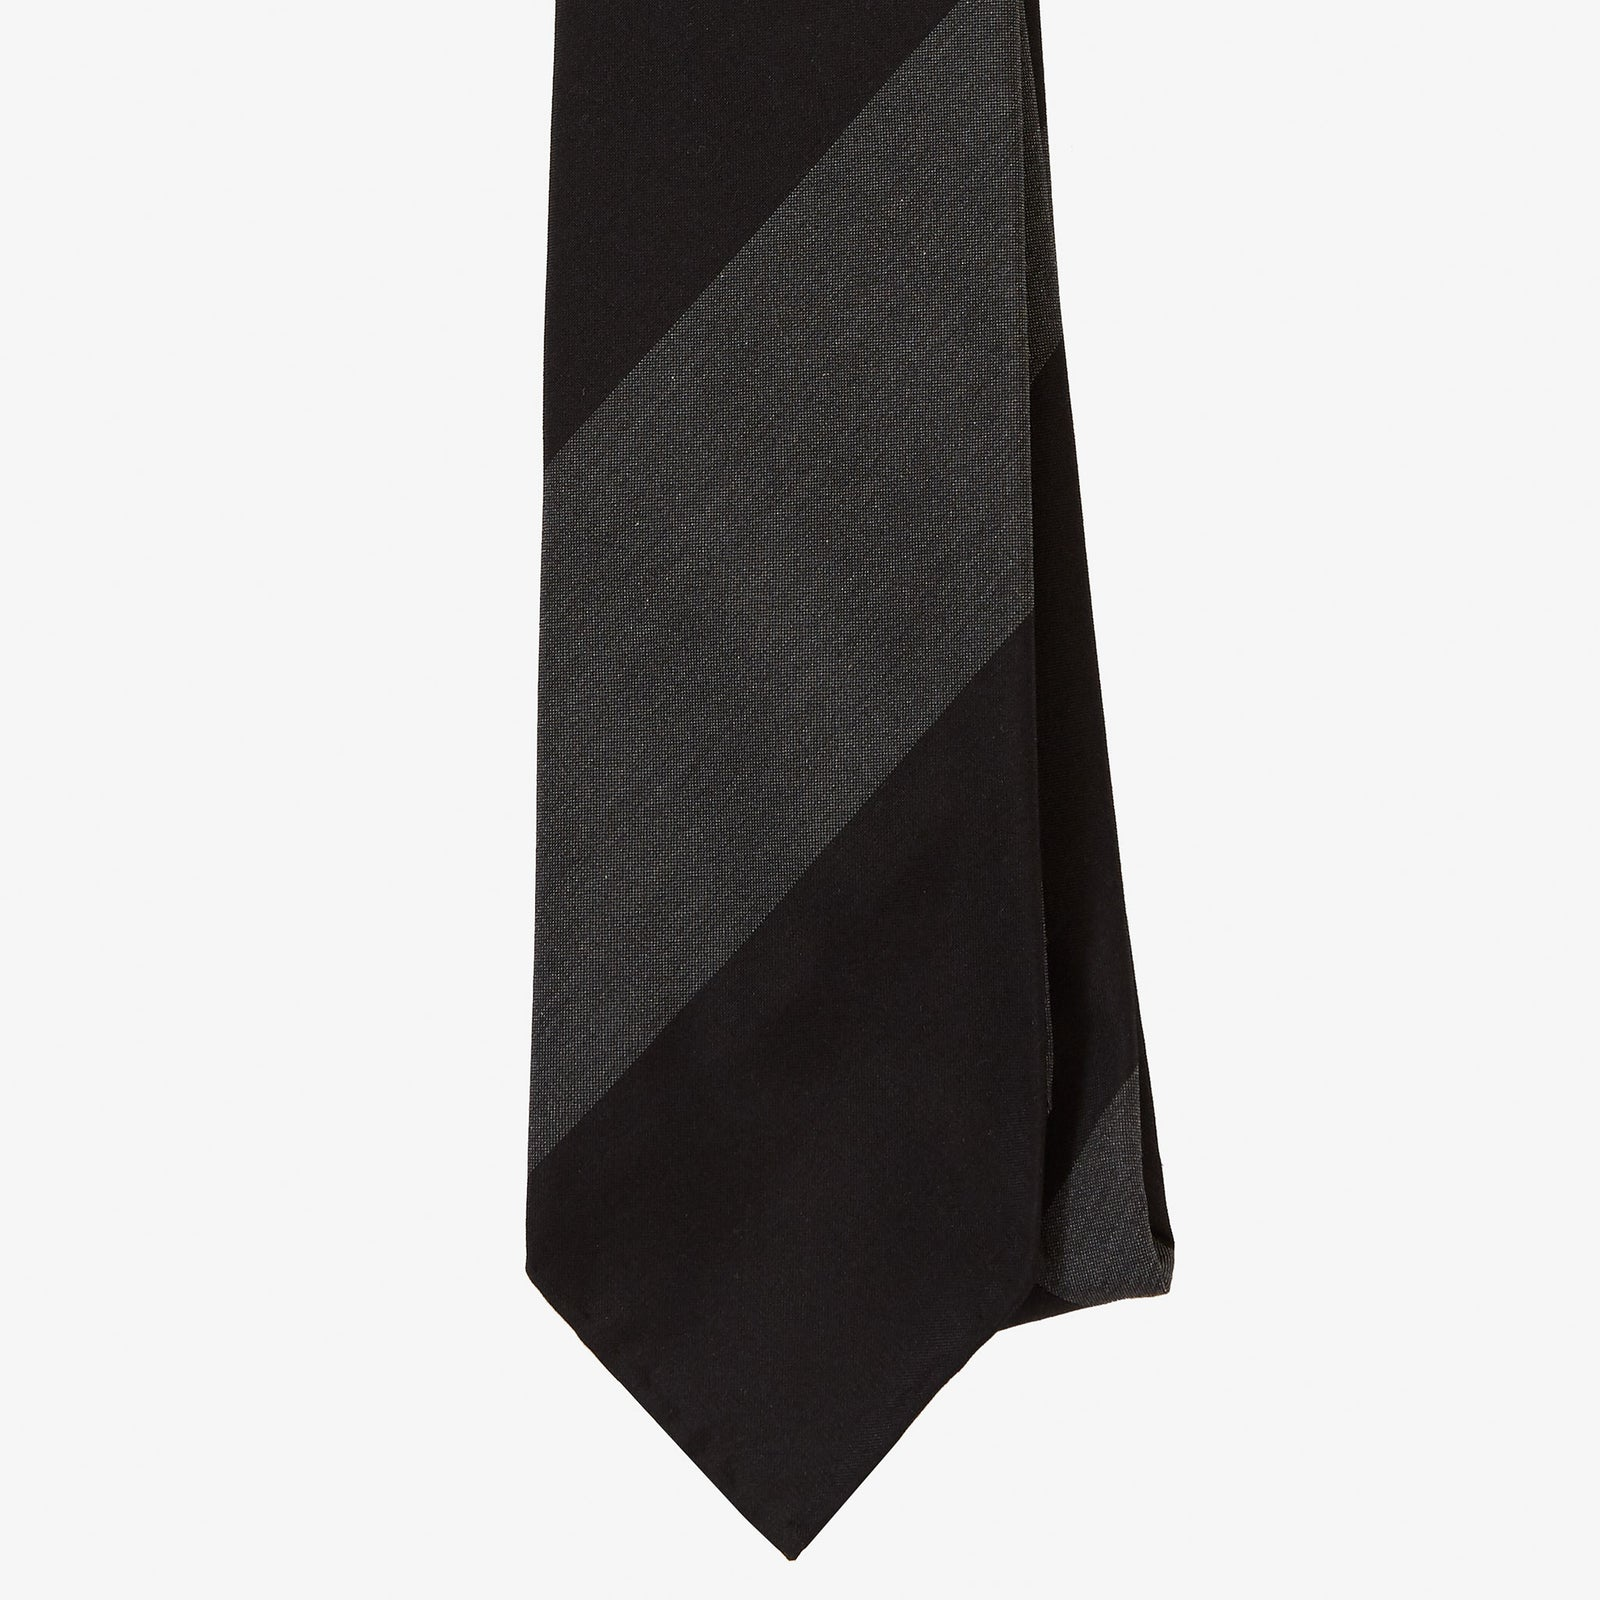 Dry Silk Tie Black Grey Block Stripe